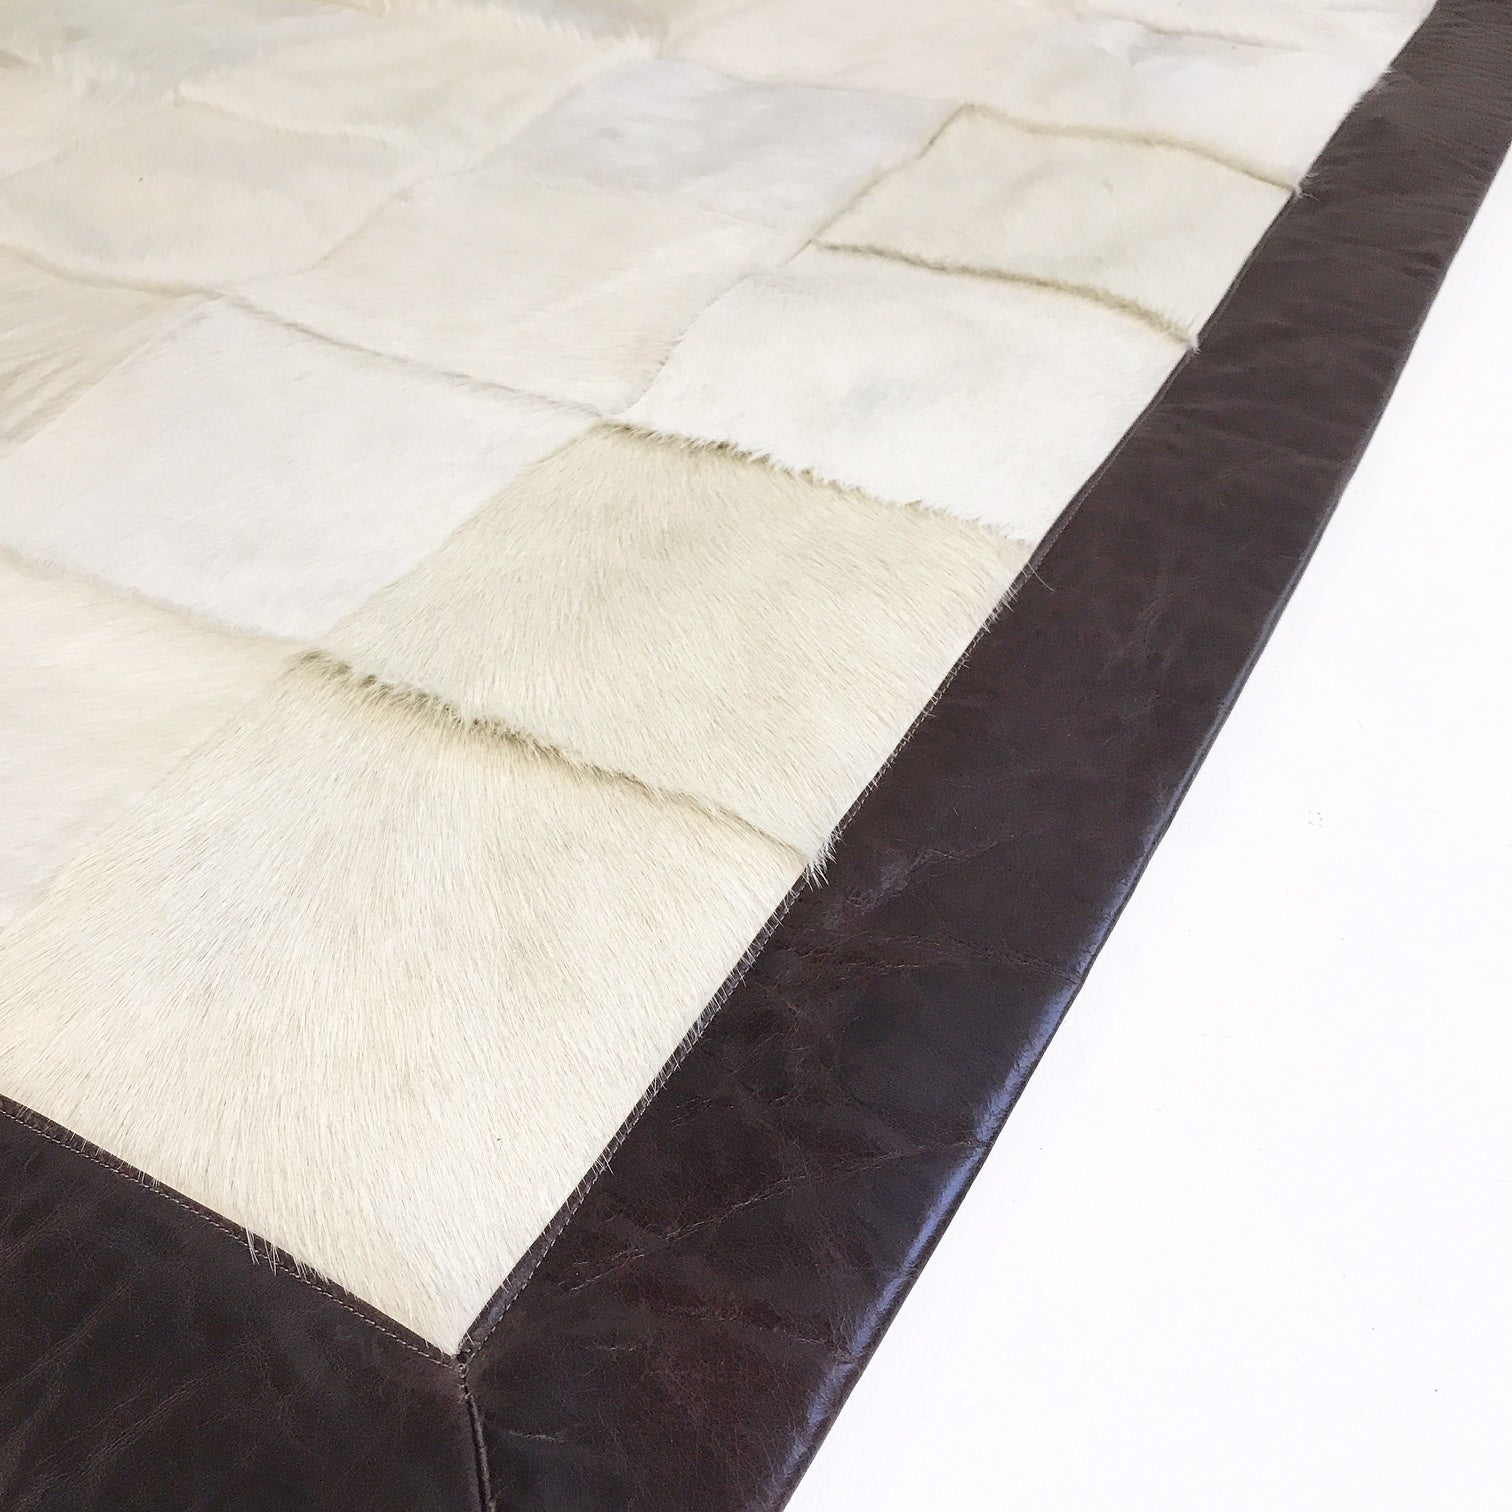 Brazilian Cowhide Patchwork Rug, 8x10 ft